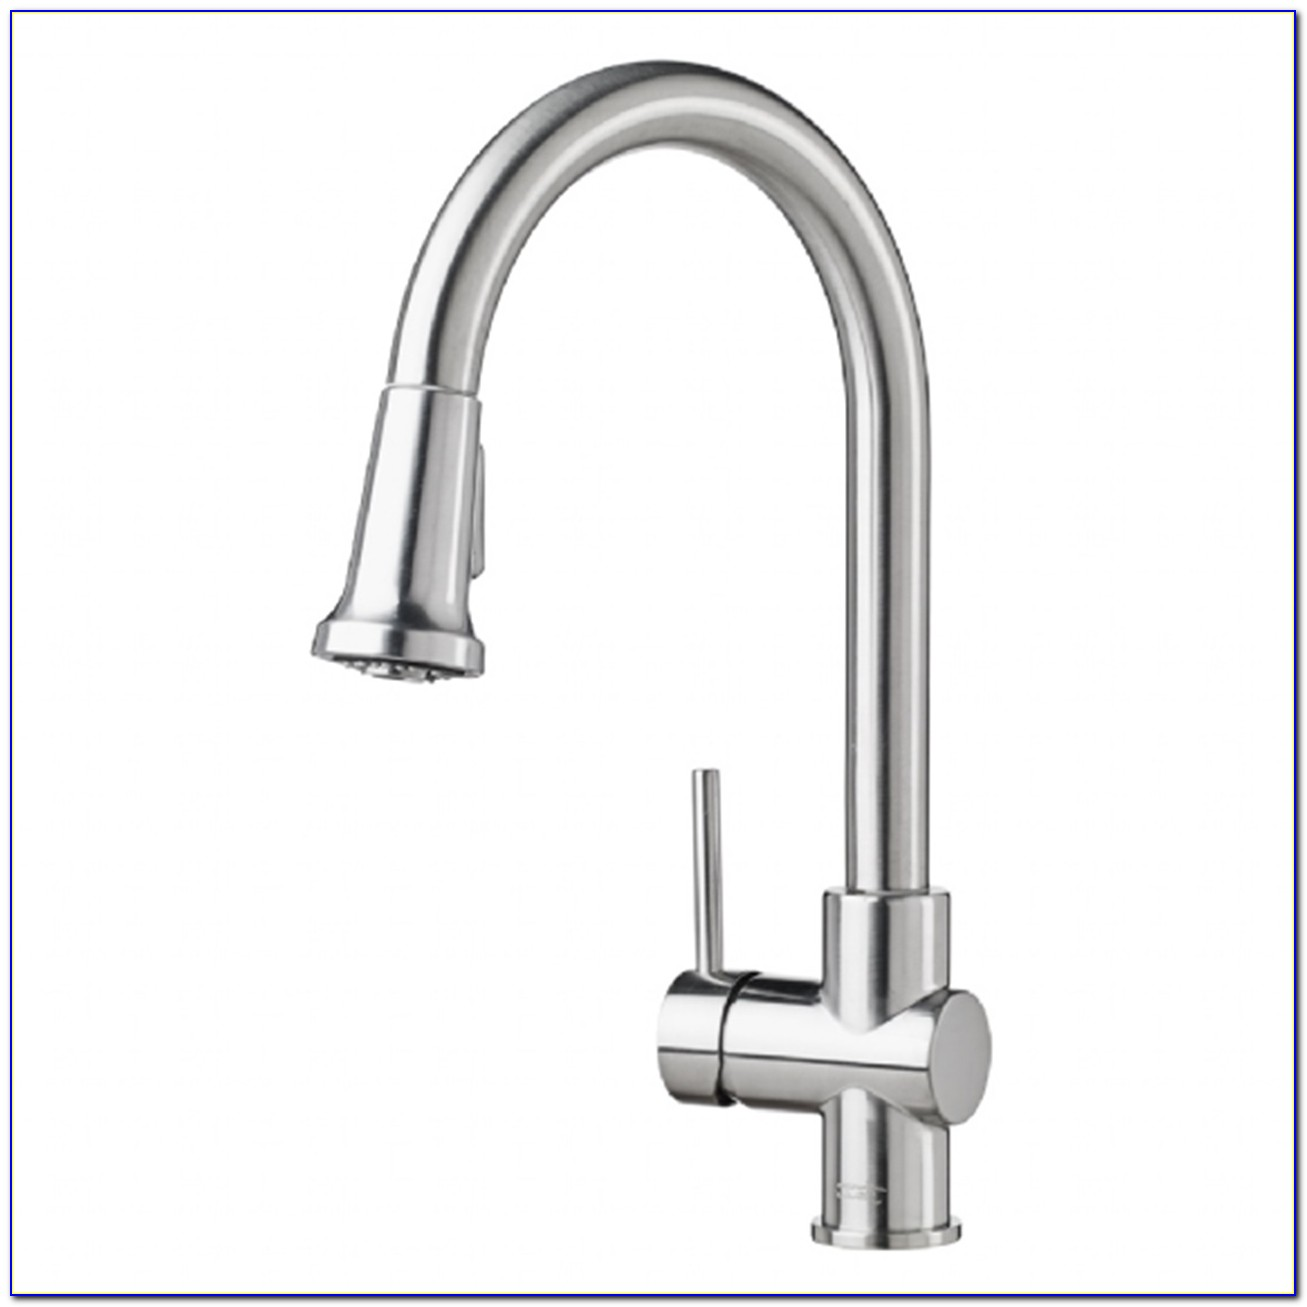 Commercial Stainless Steel Sink Faucets